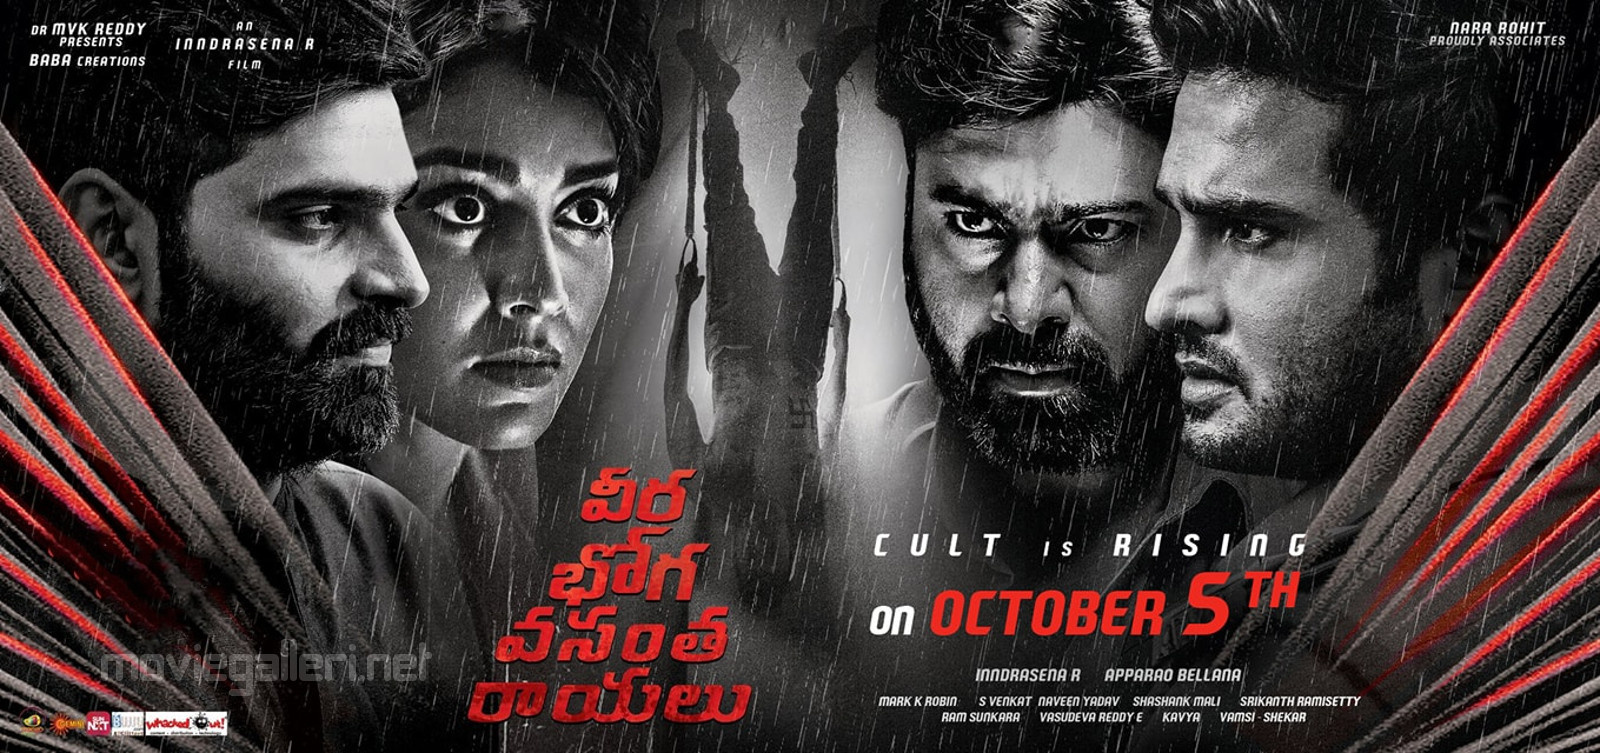 Sree Vishnu, Shriya Saran, Sudheer Babu, Nara Rohit in Veera Bhoga Vasantha Rayalu Movie release date on Oct 5th